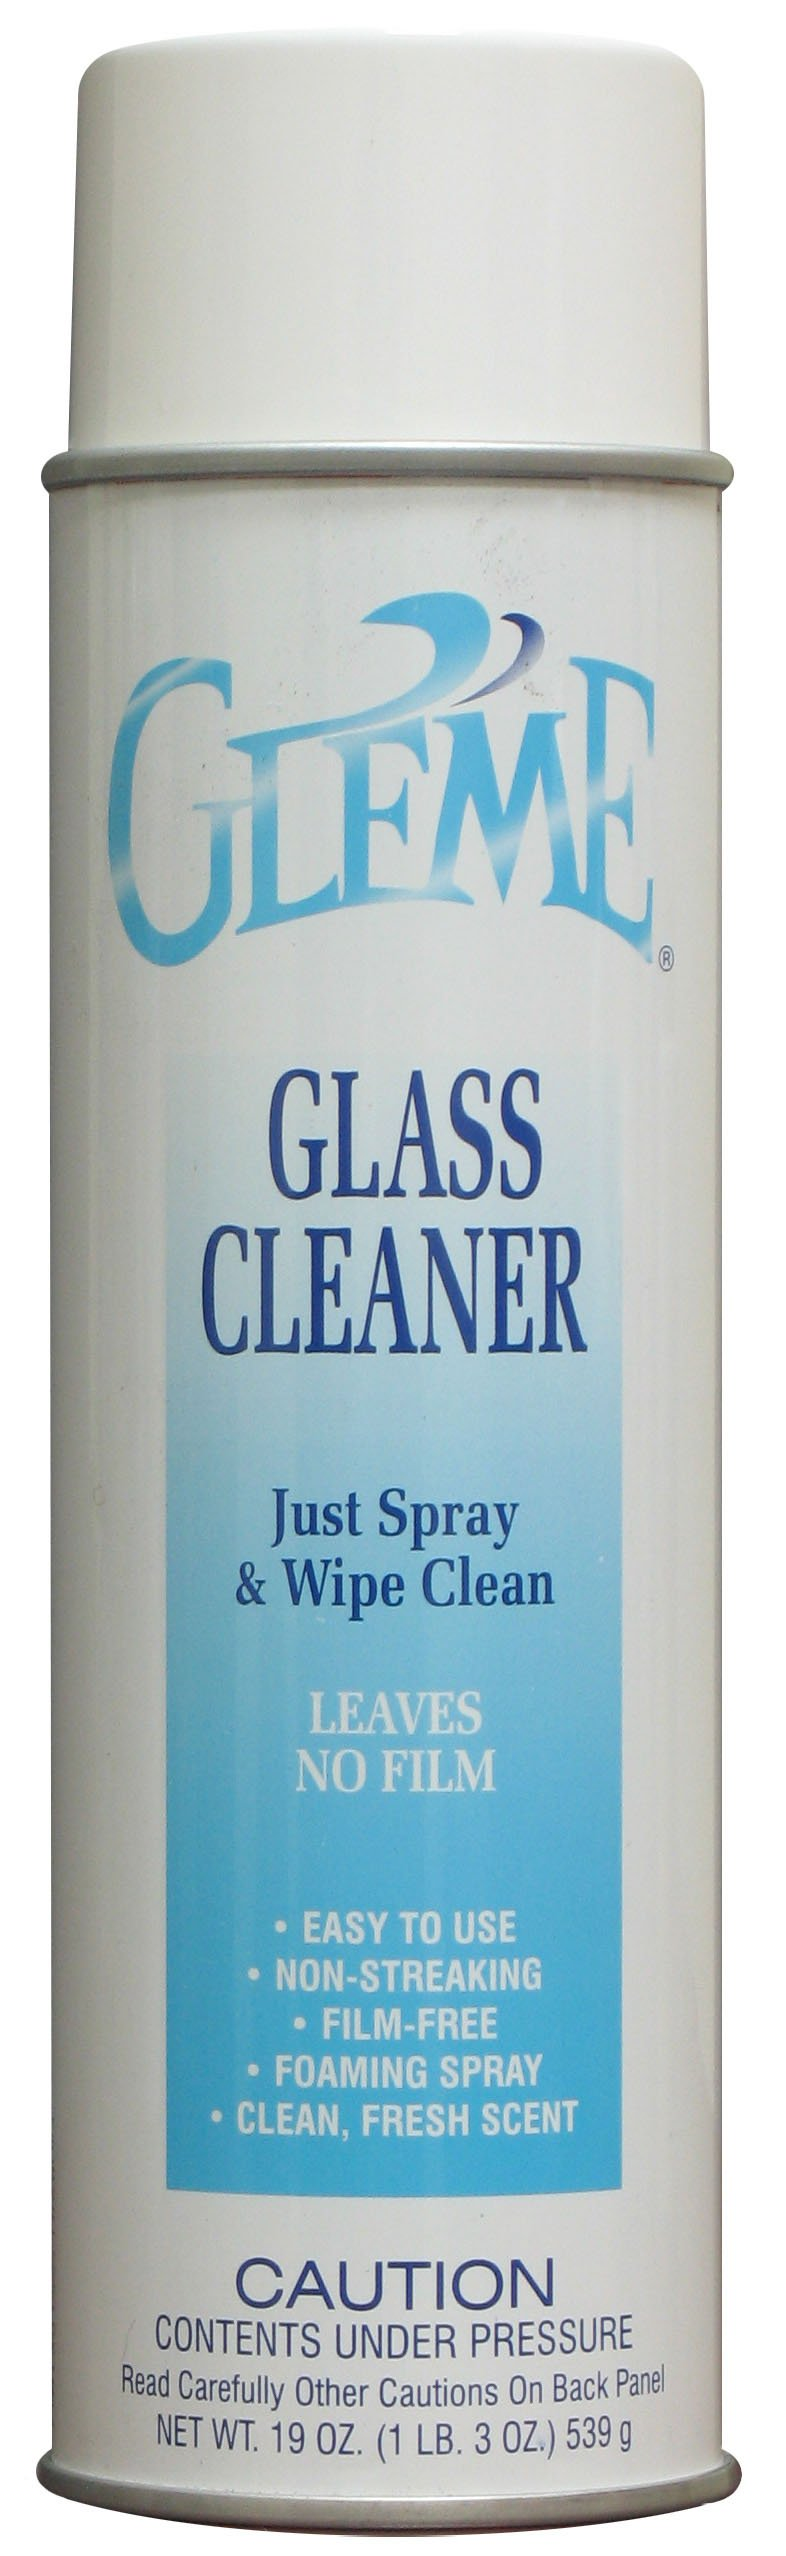 Claire C-050 19 Oz. Gleme Glass Cleaner Aerosol Can (Case of 12) by Claire (Image #1)